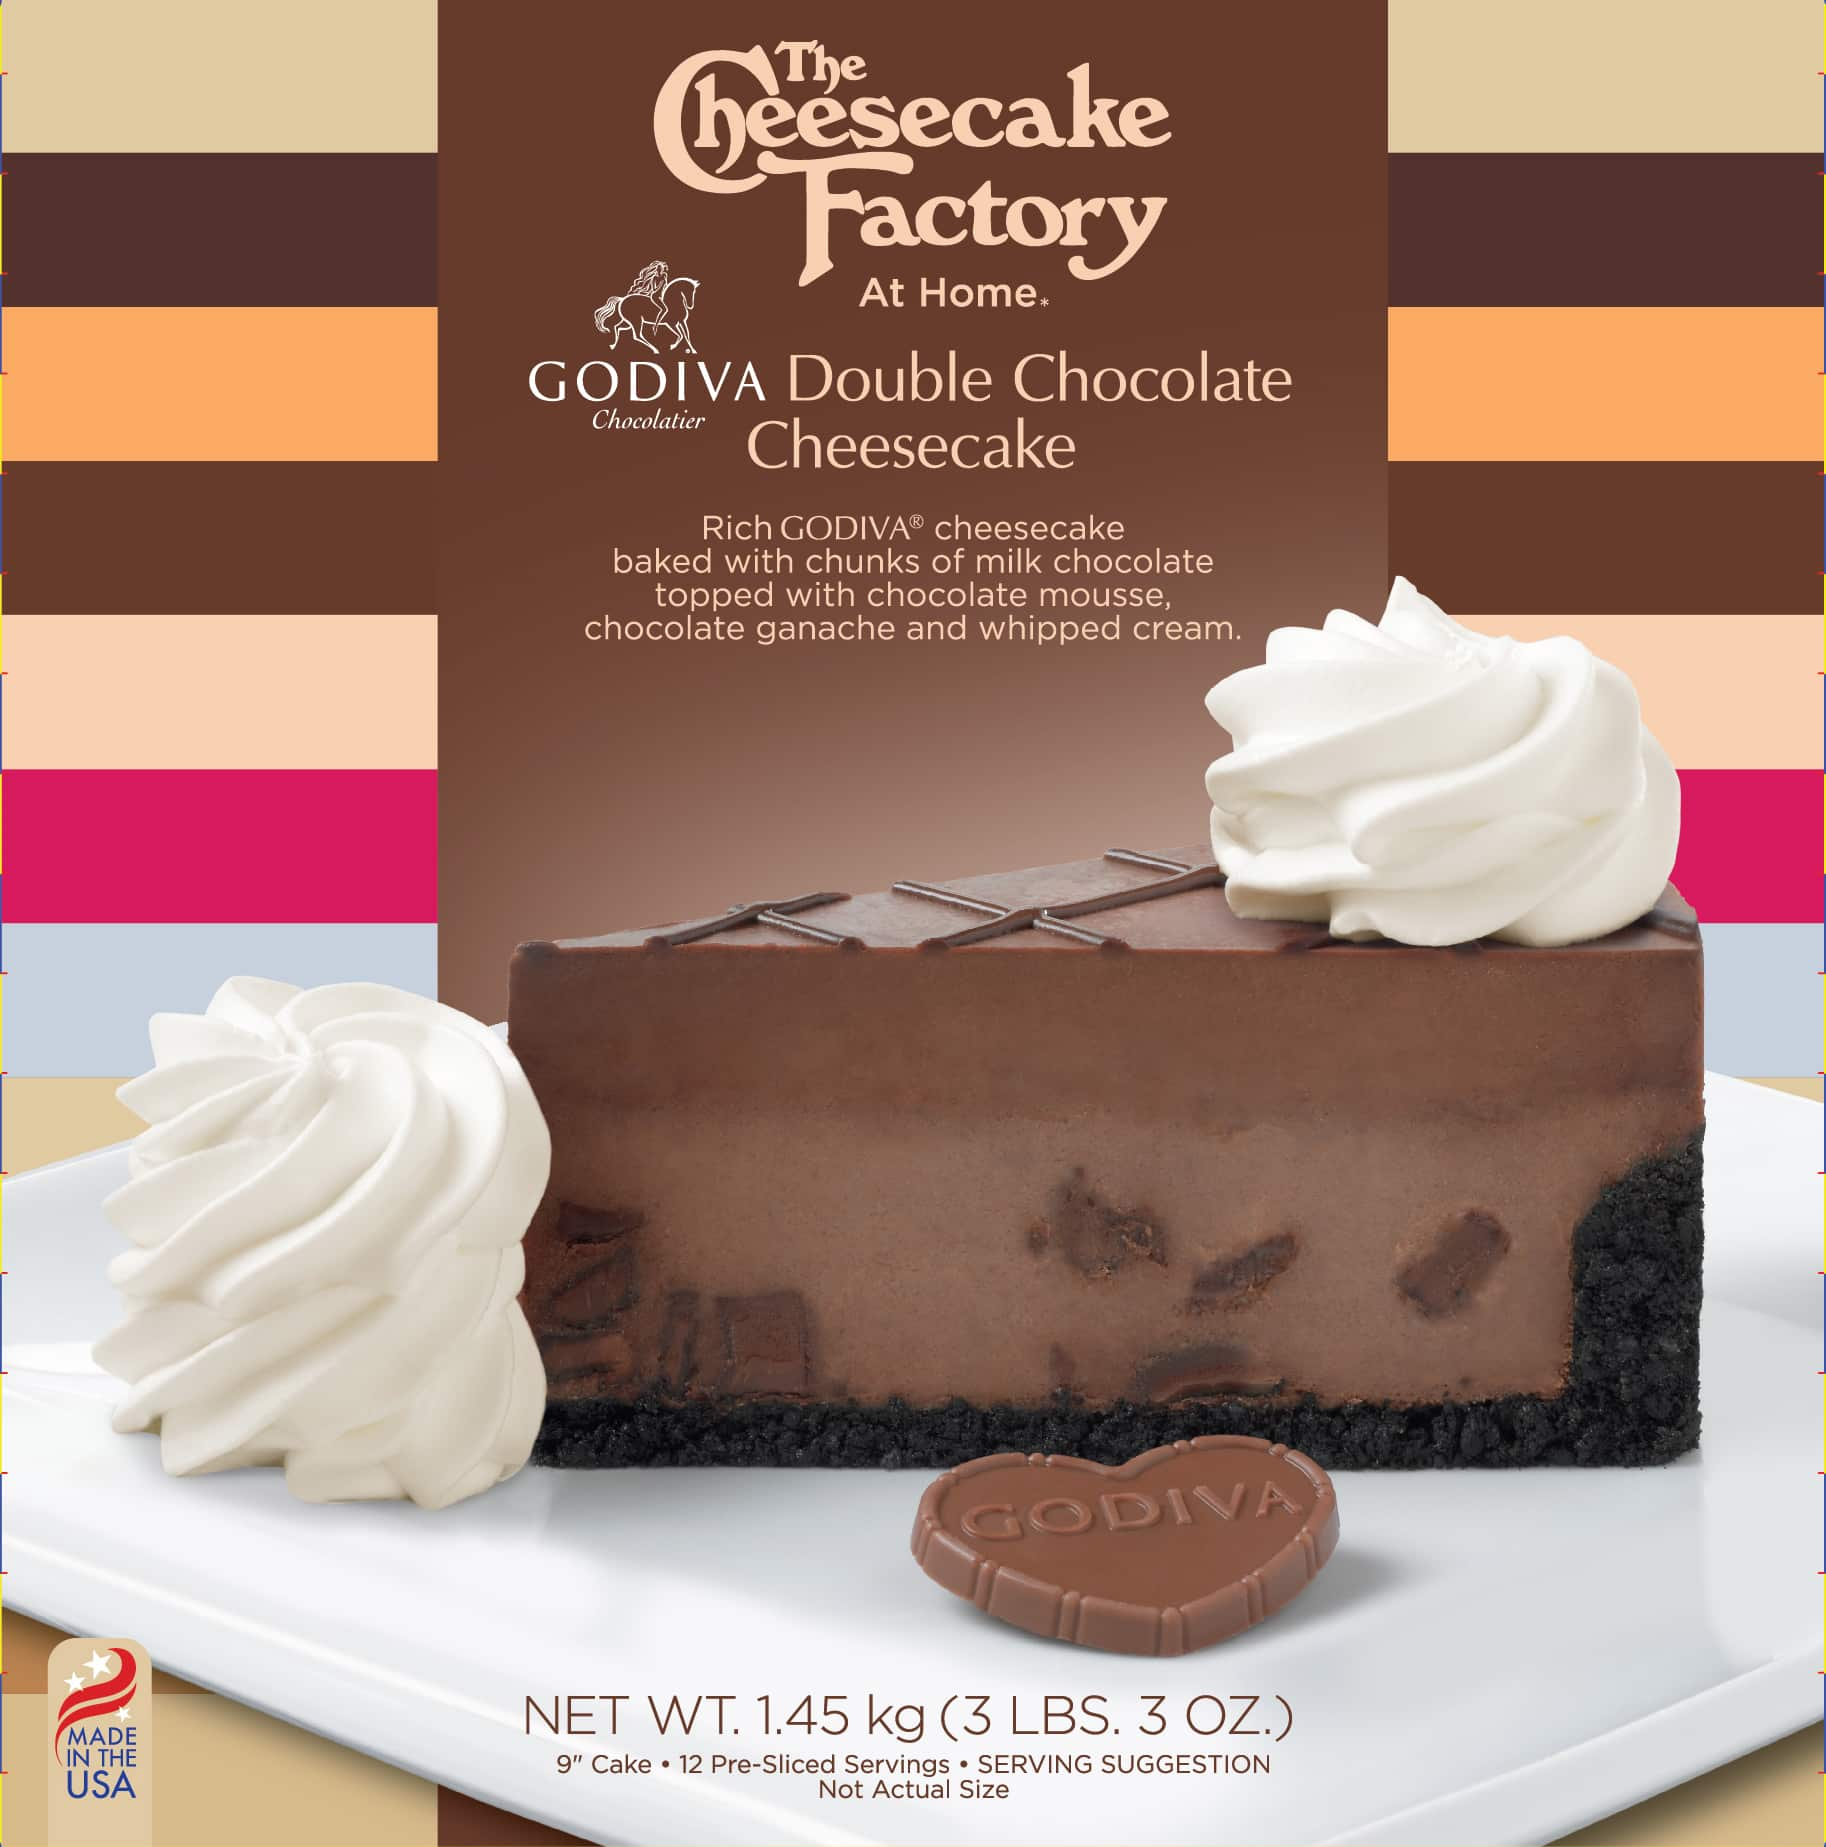 9 inch Godiva Double Chocolate Cheesecake from The Cheesecake Factory At Home Range for retail markets in UK & Europe